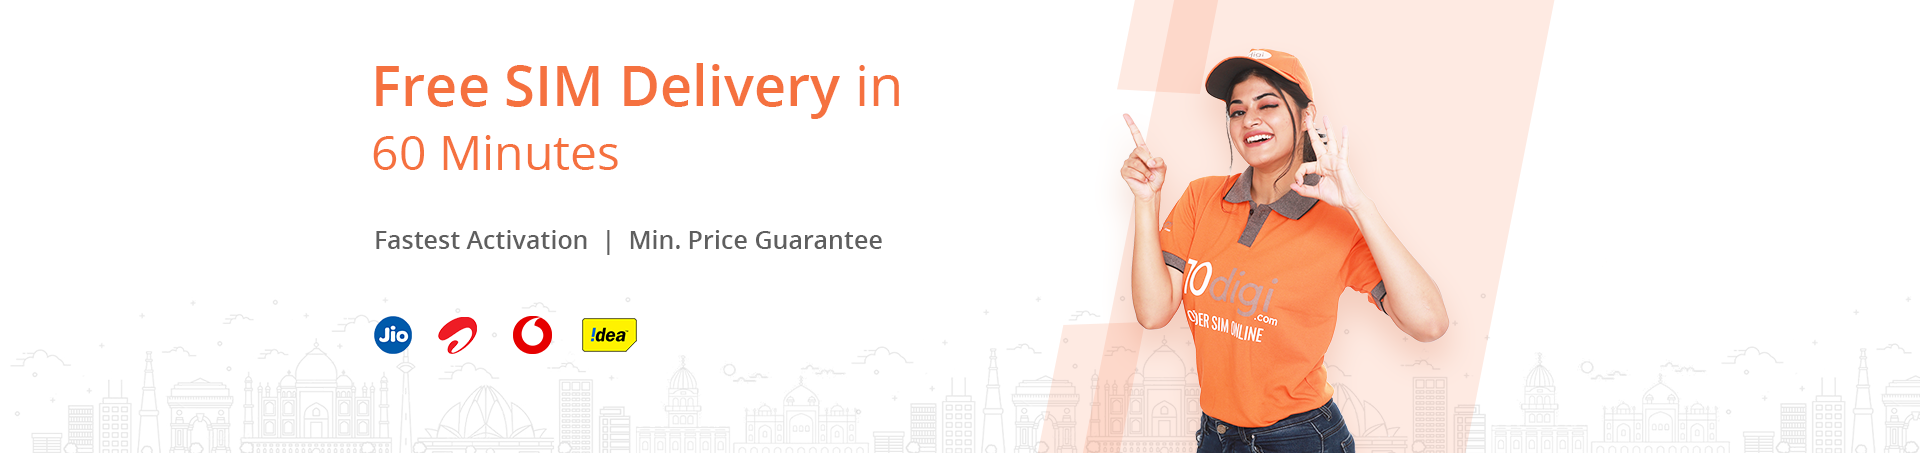 Free SIM Delivery in 60 Minutes